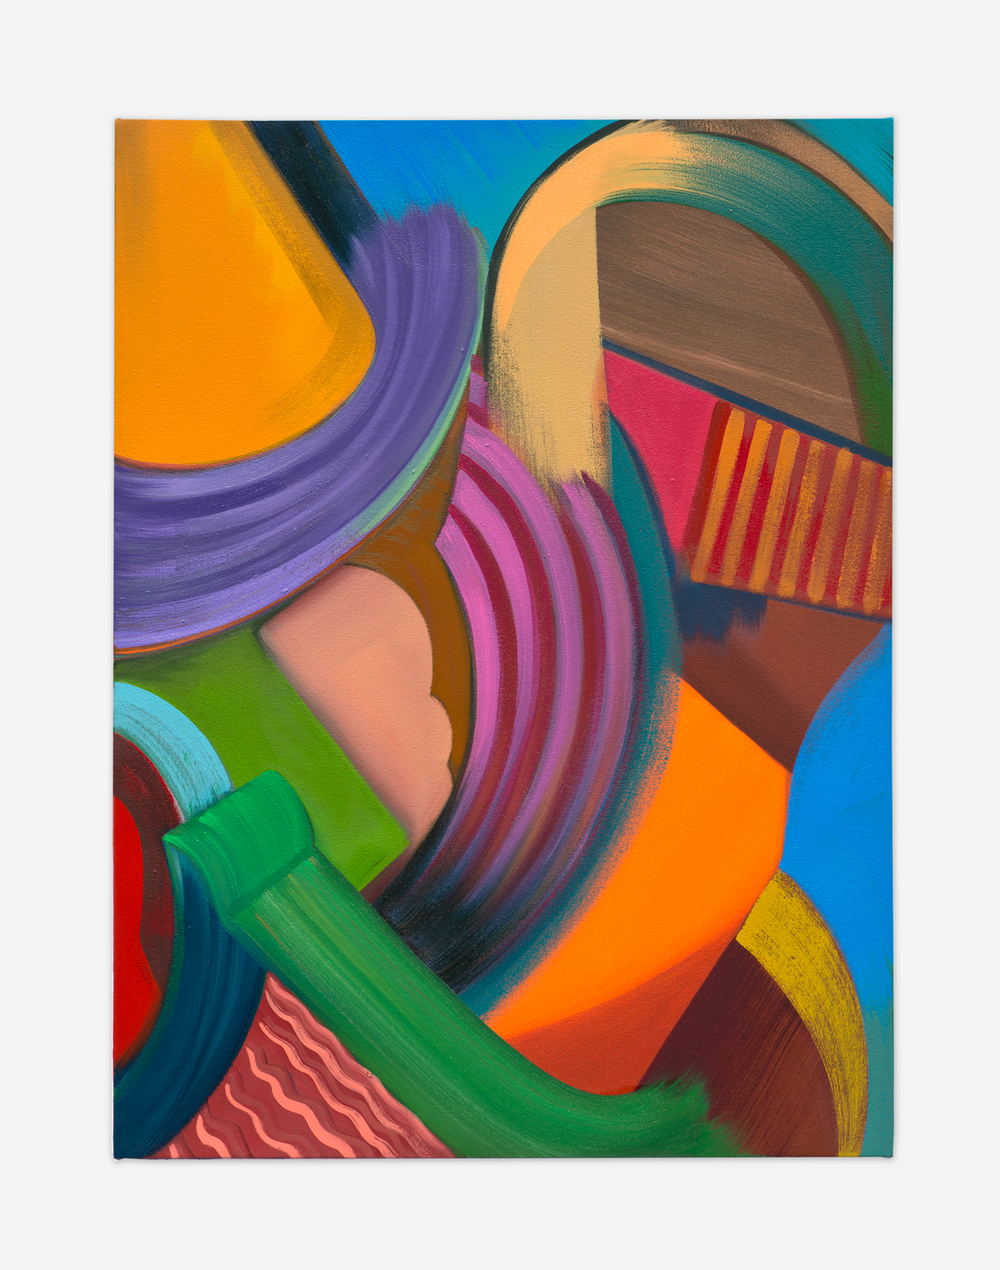 Alex Olson  Filter (3)  2015 Oil on canvas 24h x 18w in AO185